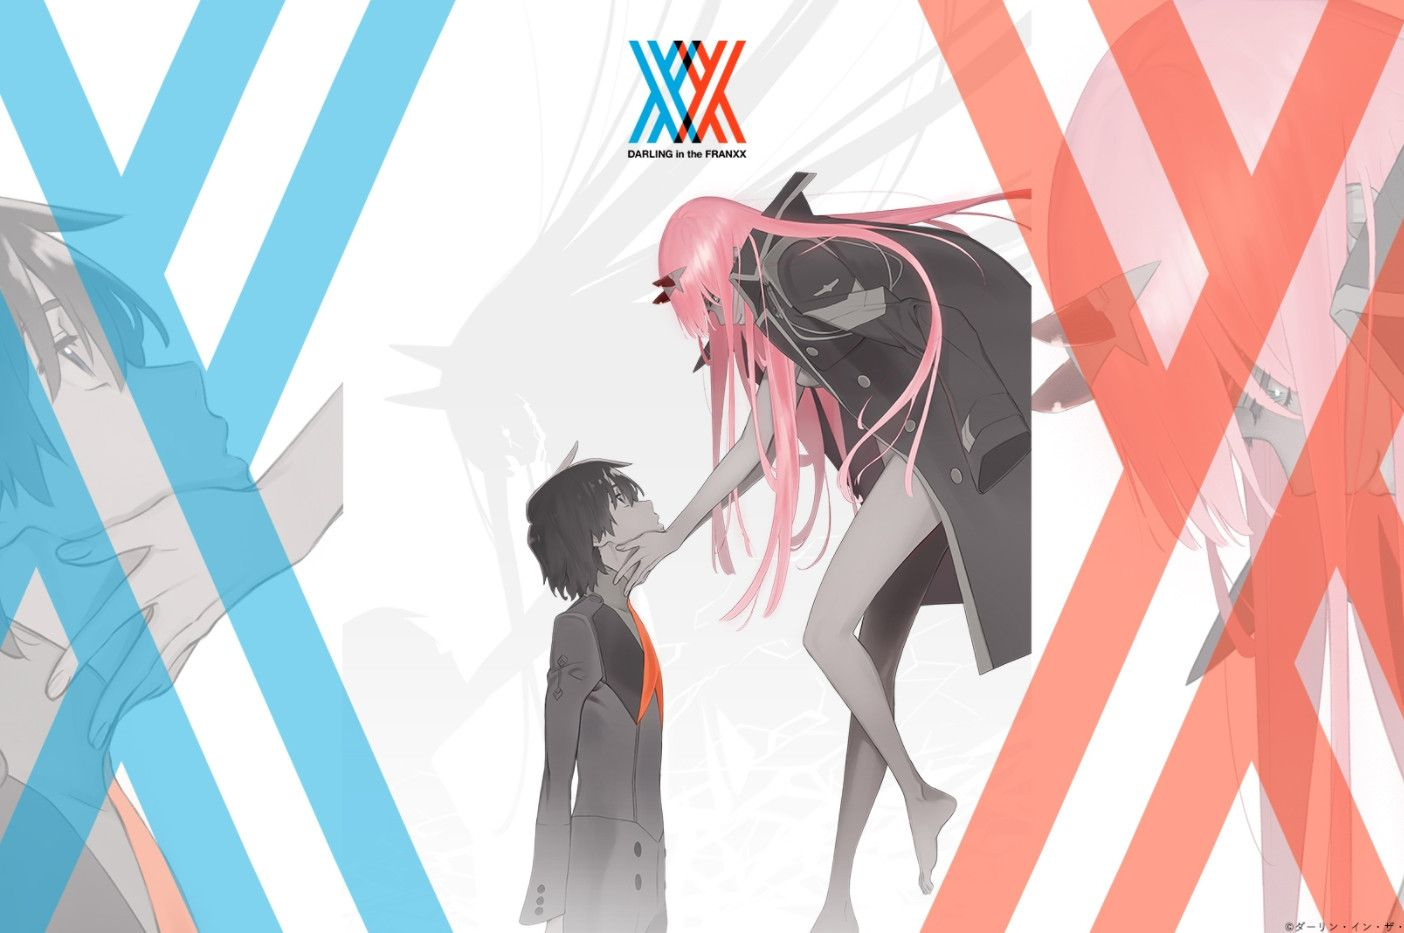 Darling in the FranXX Seni, Animasi, Binatang buas